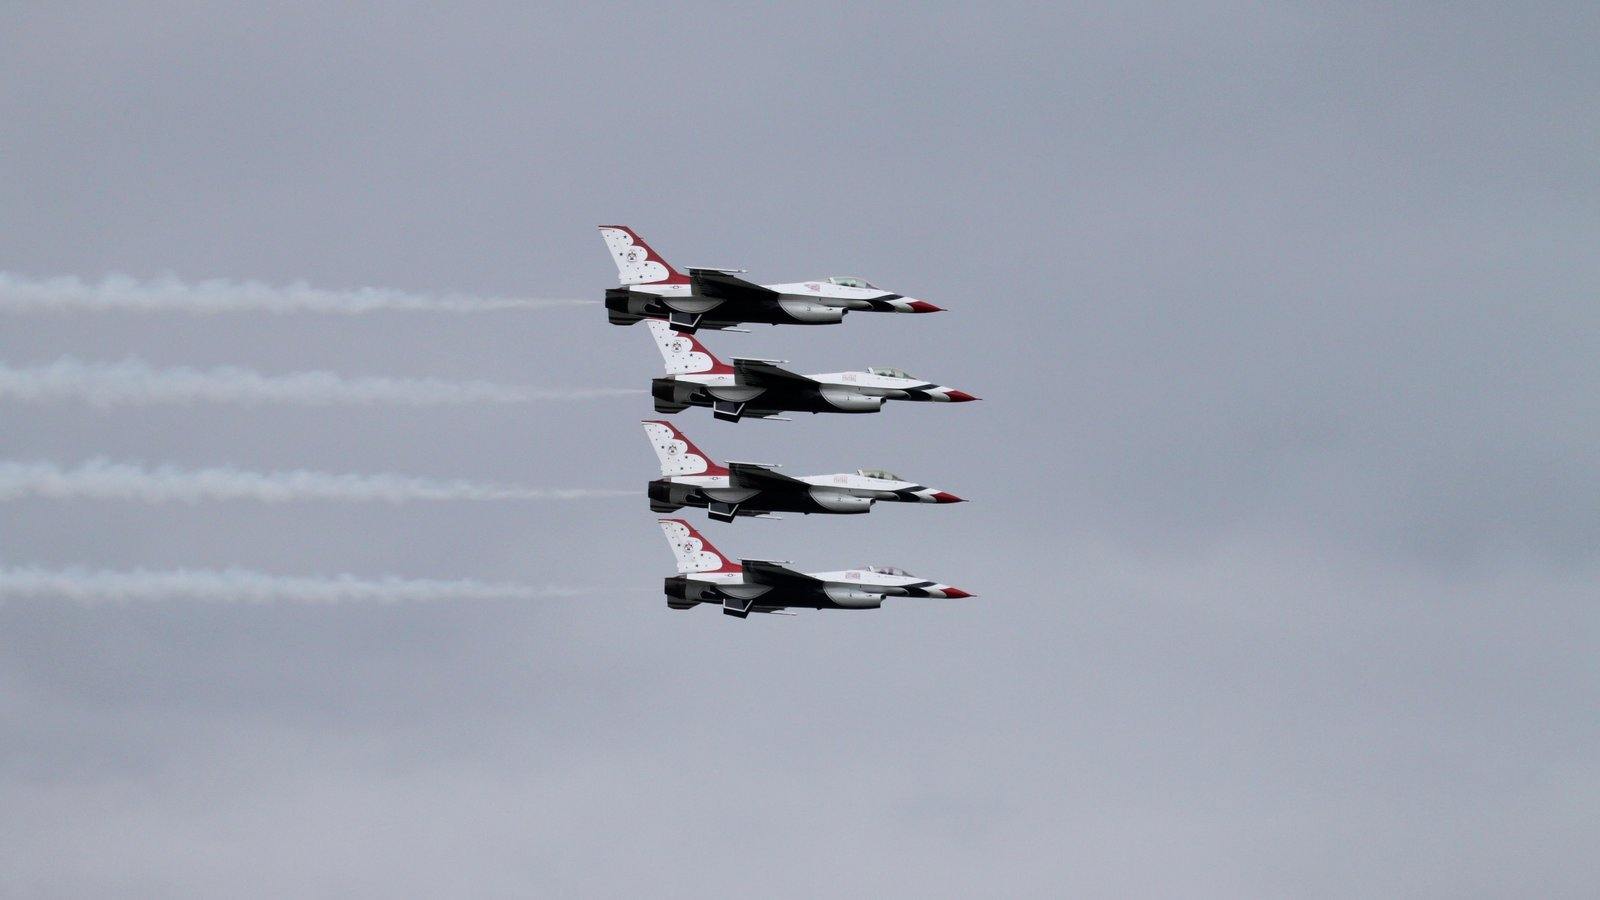 USAF Thunderbirds F16 wallpaper backgroundUsaf Iphone Wallpaper